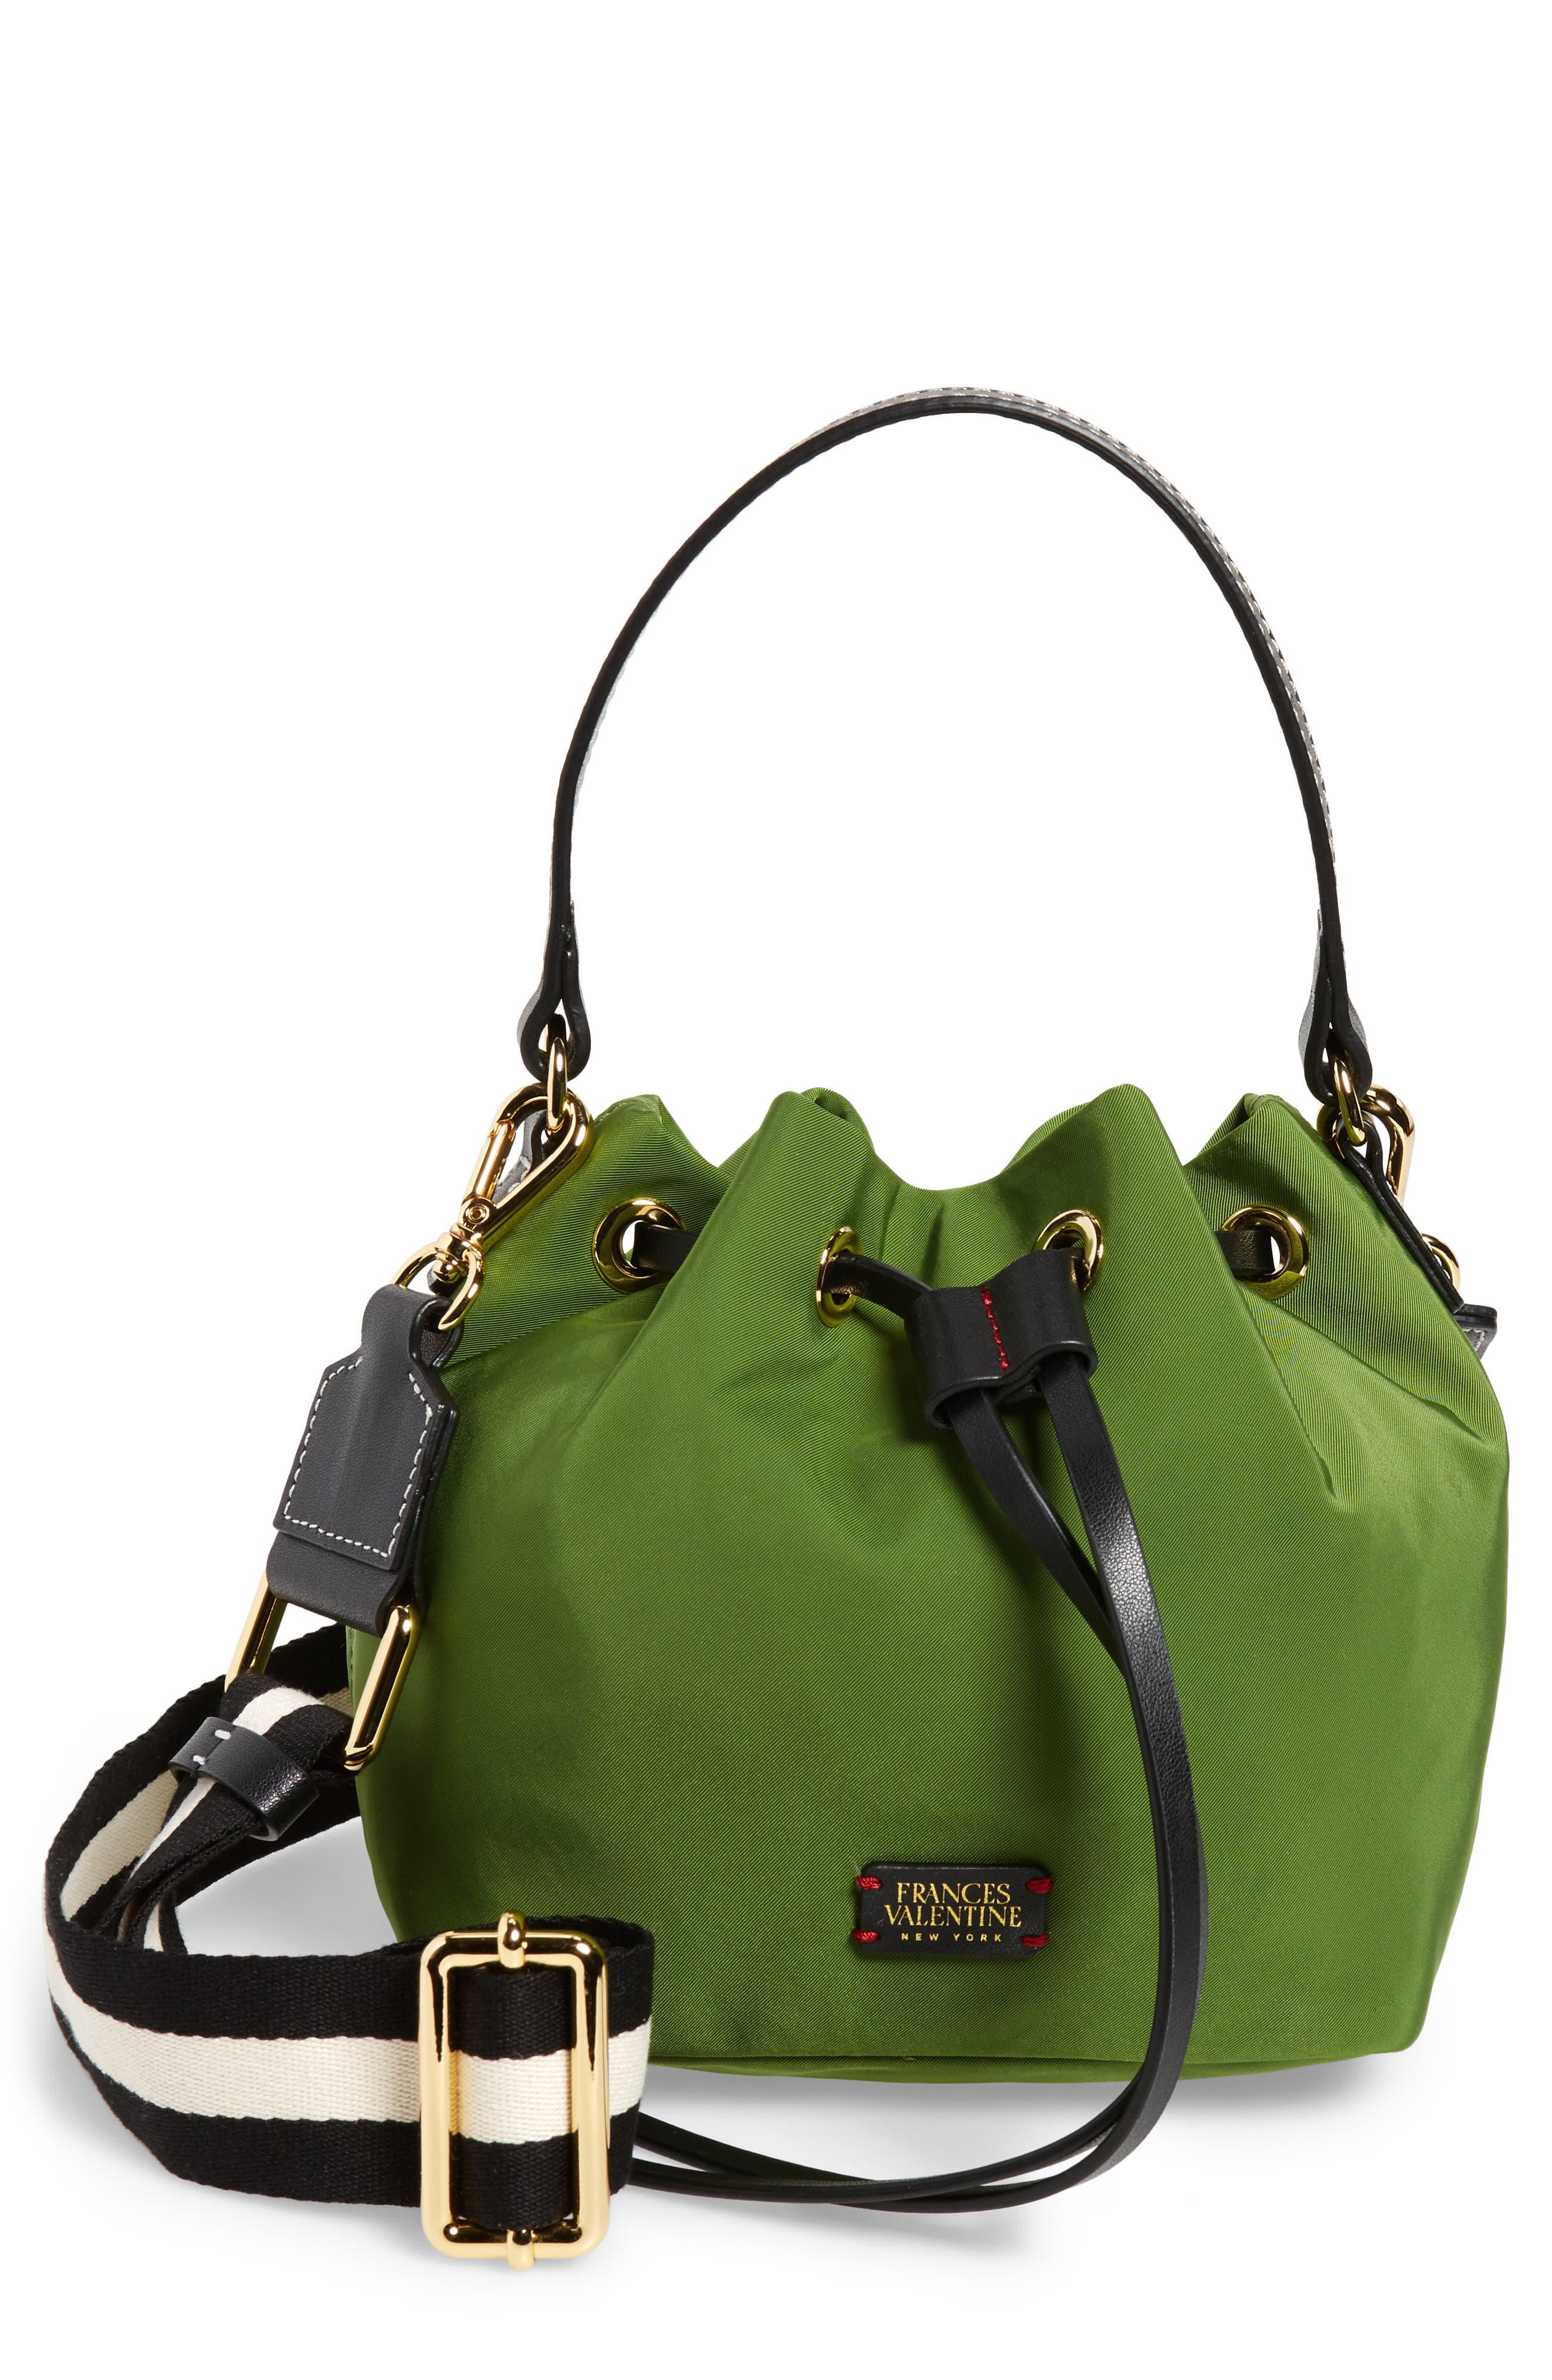 Frances Valentine Small Ann Nylon Bucket Bag